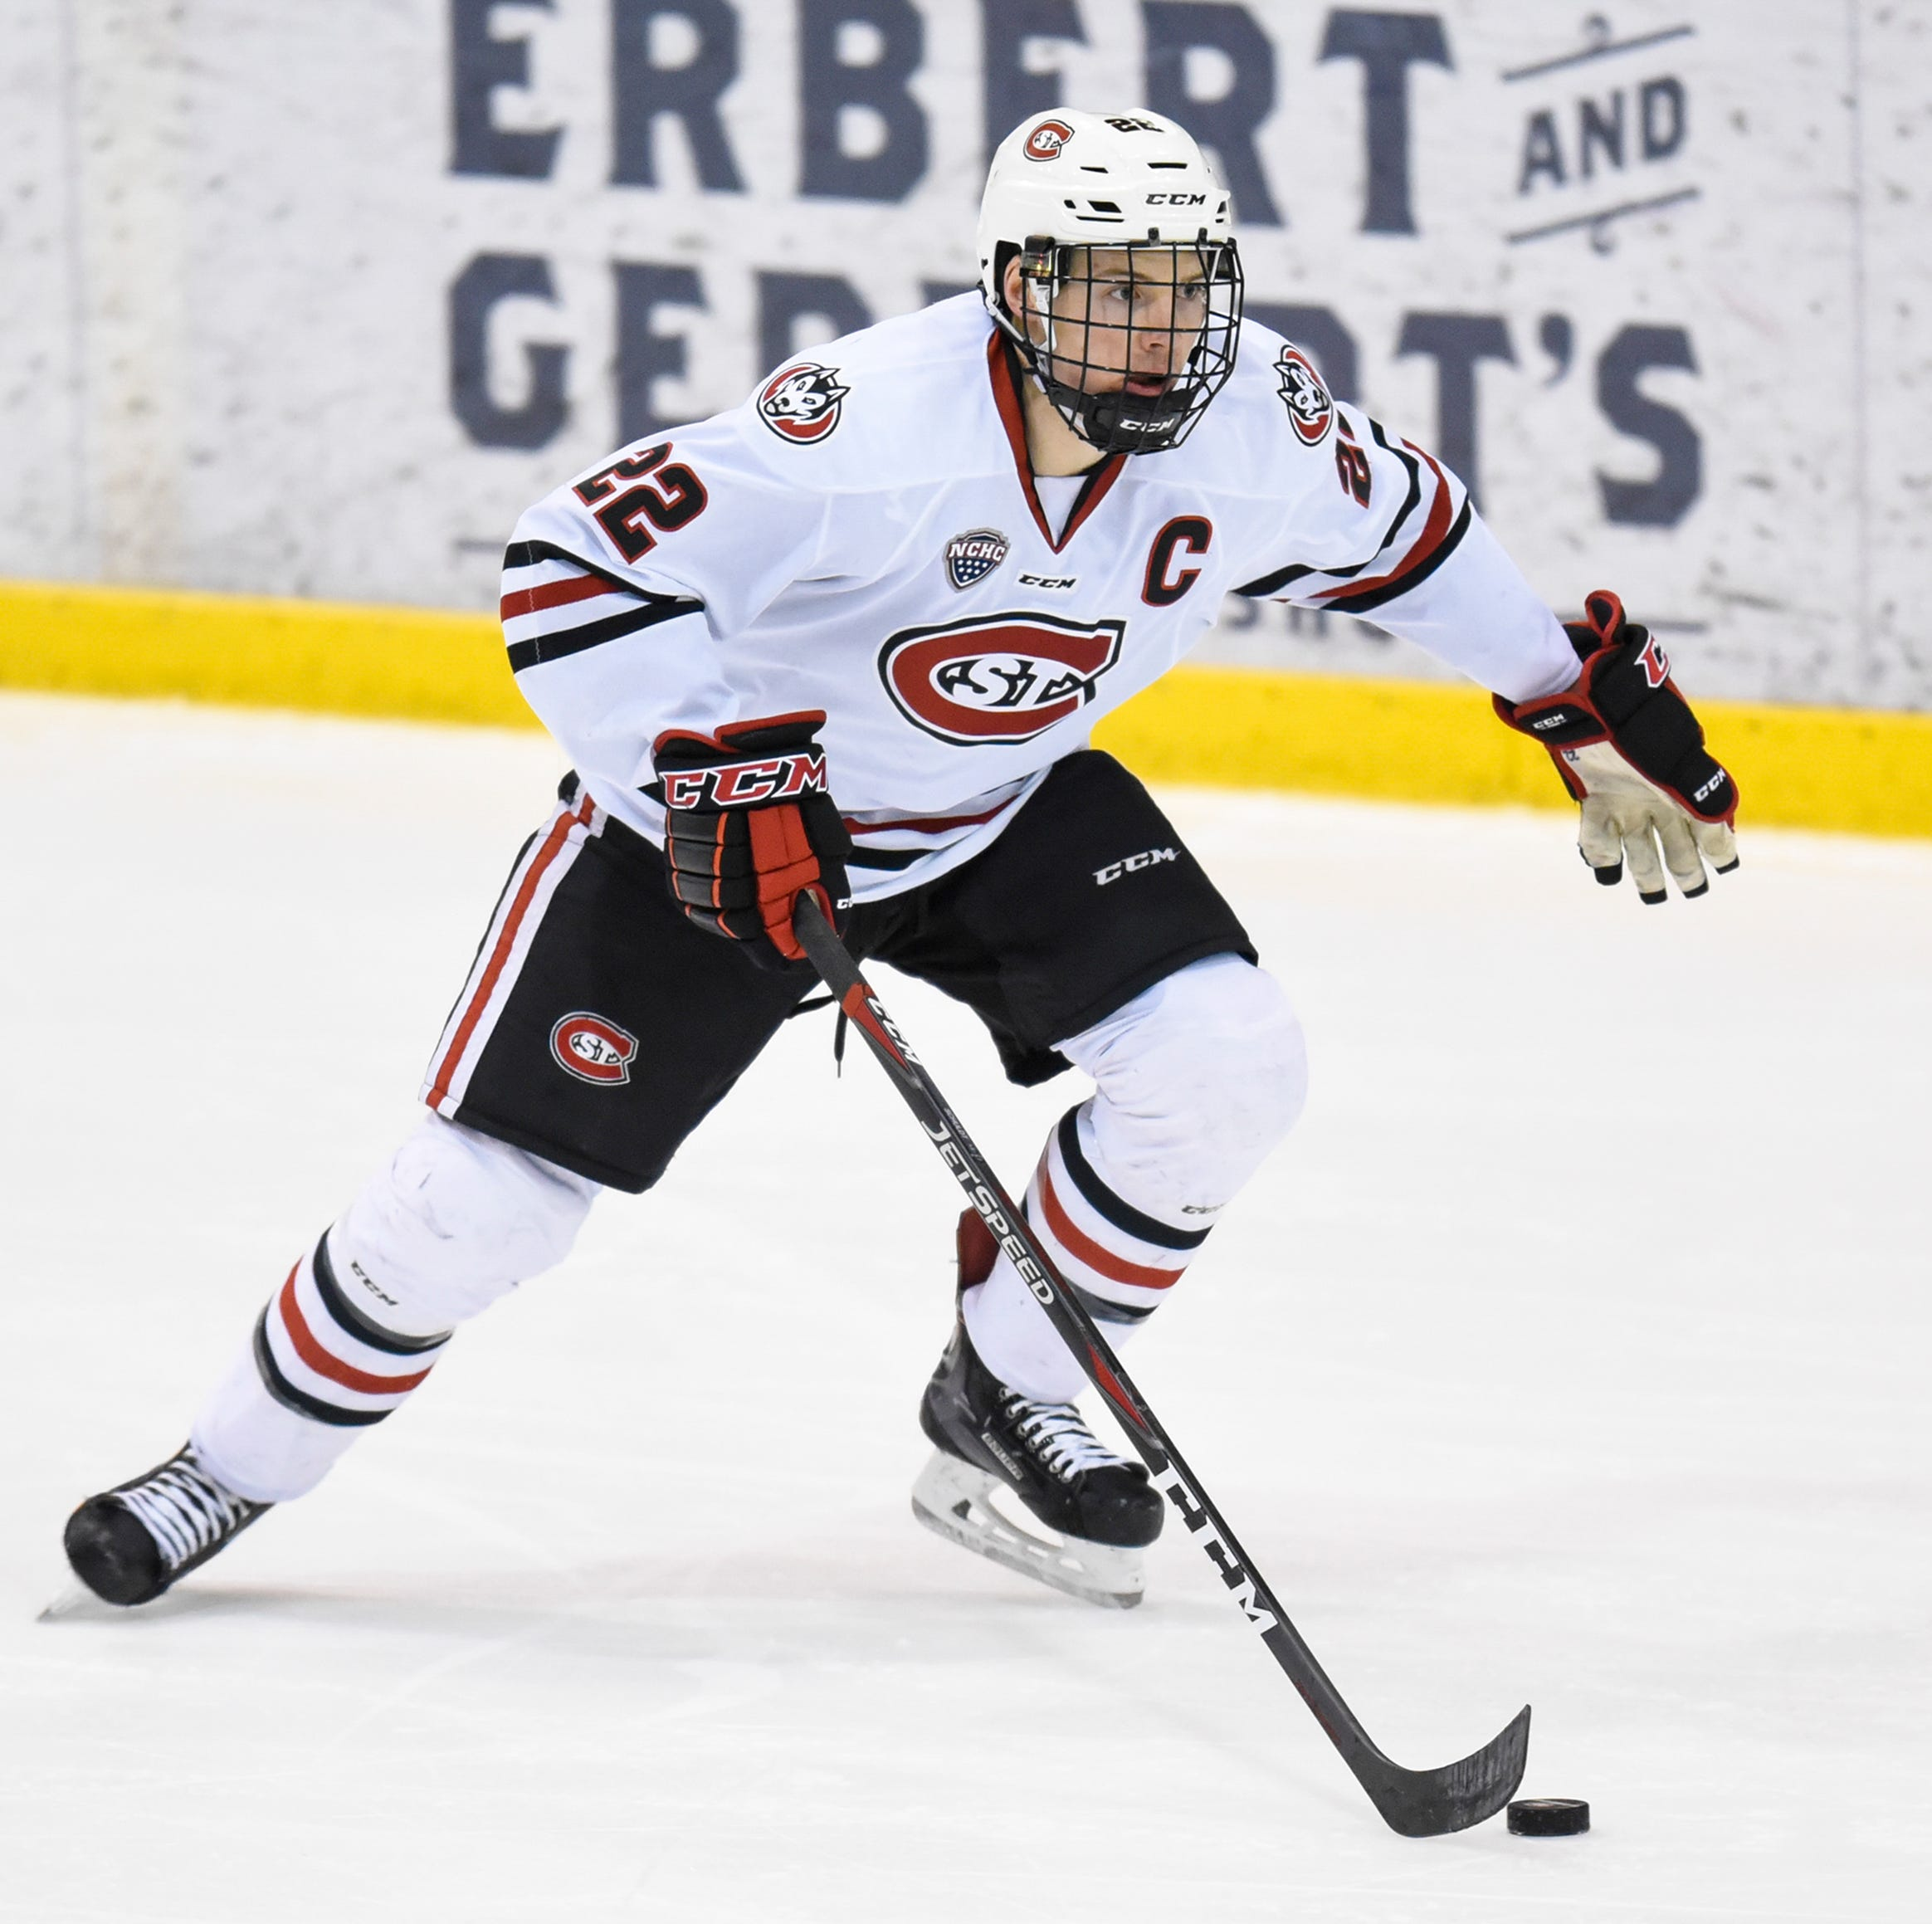 2019 Hobey Baker Award goes to Massachusetts player, SCSU's Jimmy Schuldt a runner-up